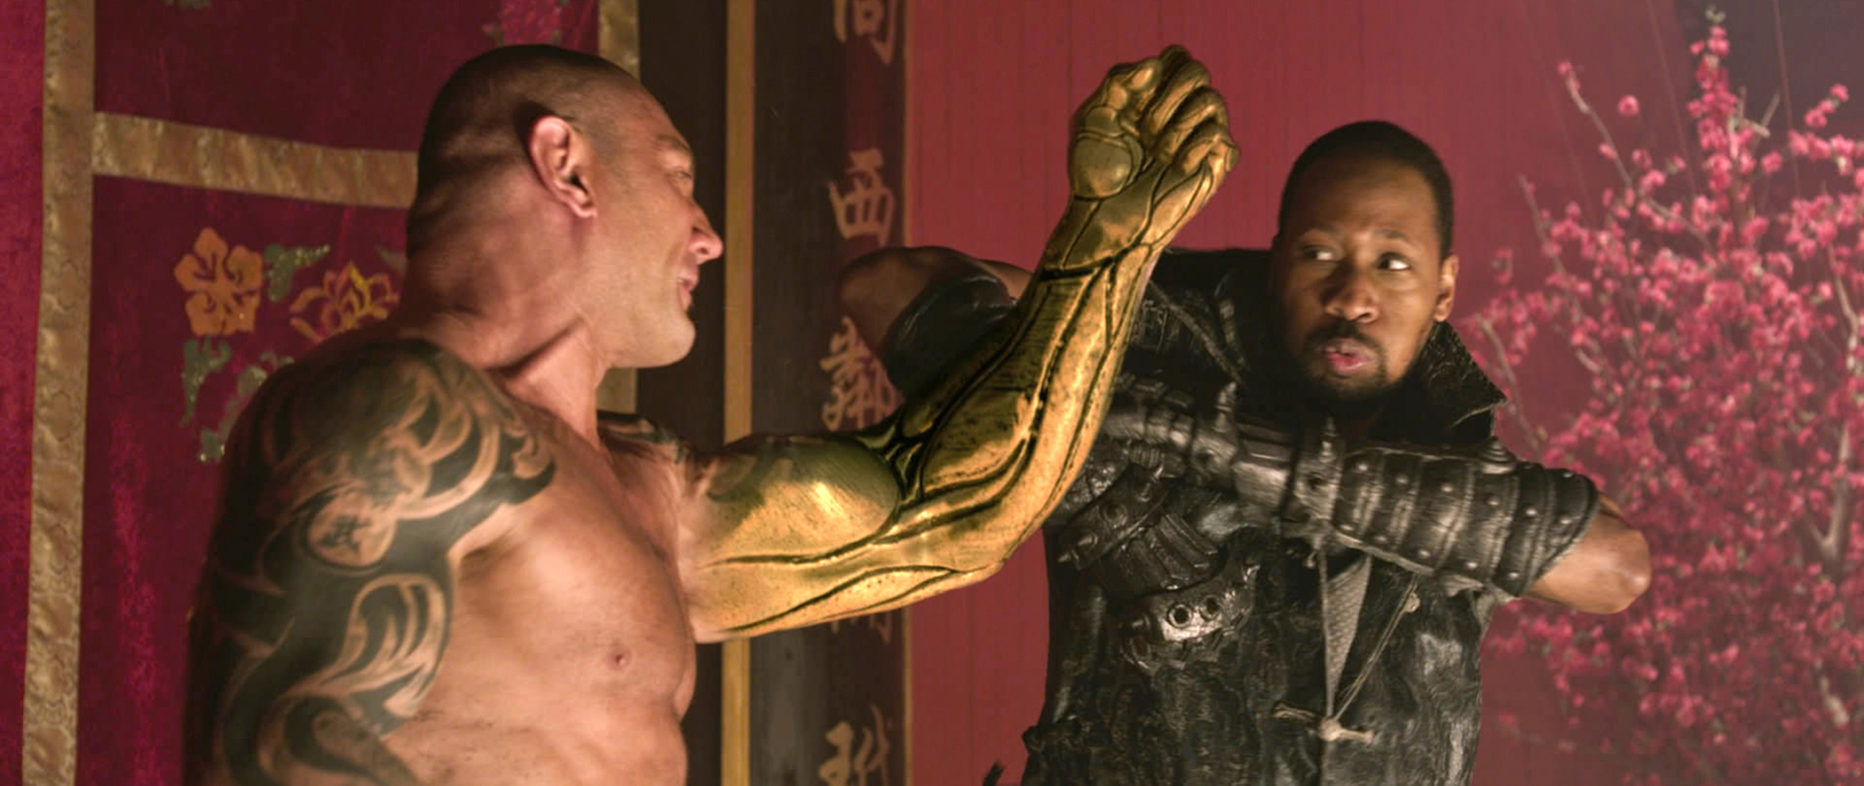 The RZA takes on Dave Bautista in The Man with the Iron Fists (2012)